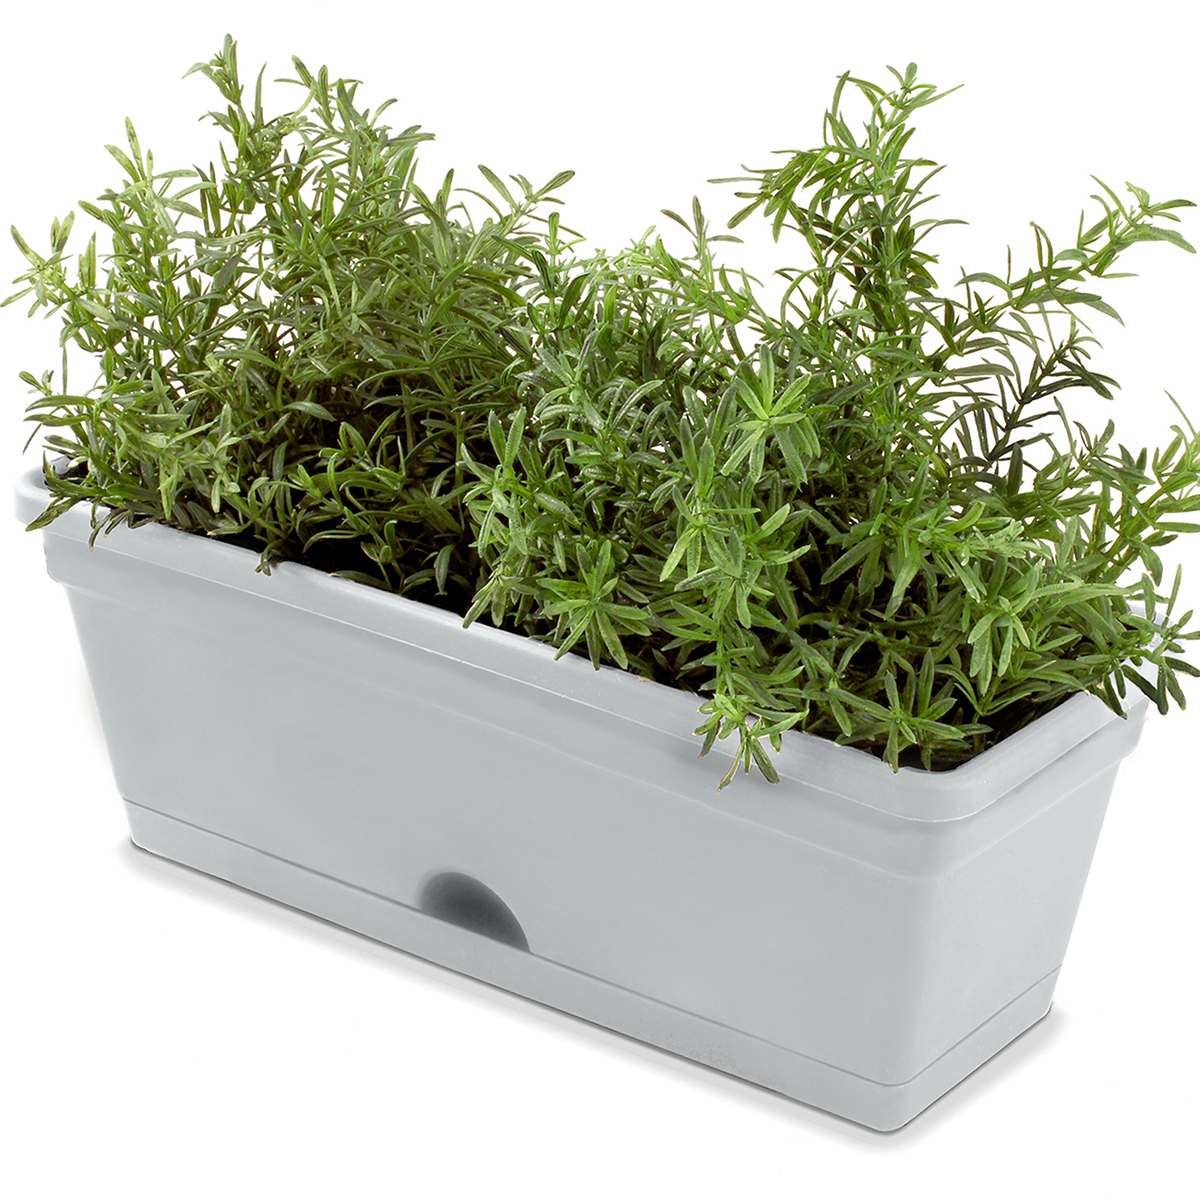 18694 - Herb Pot with herbs Concrete Grey